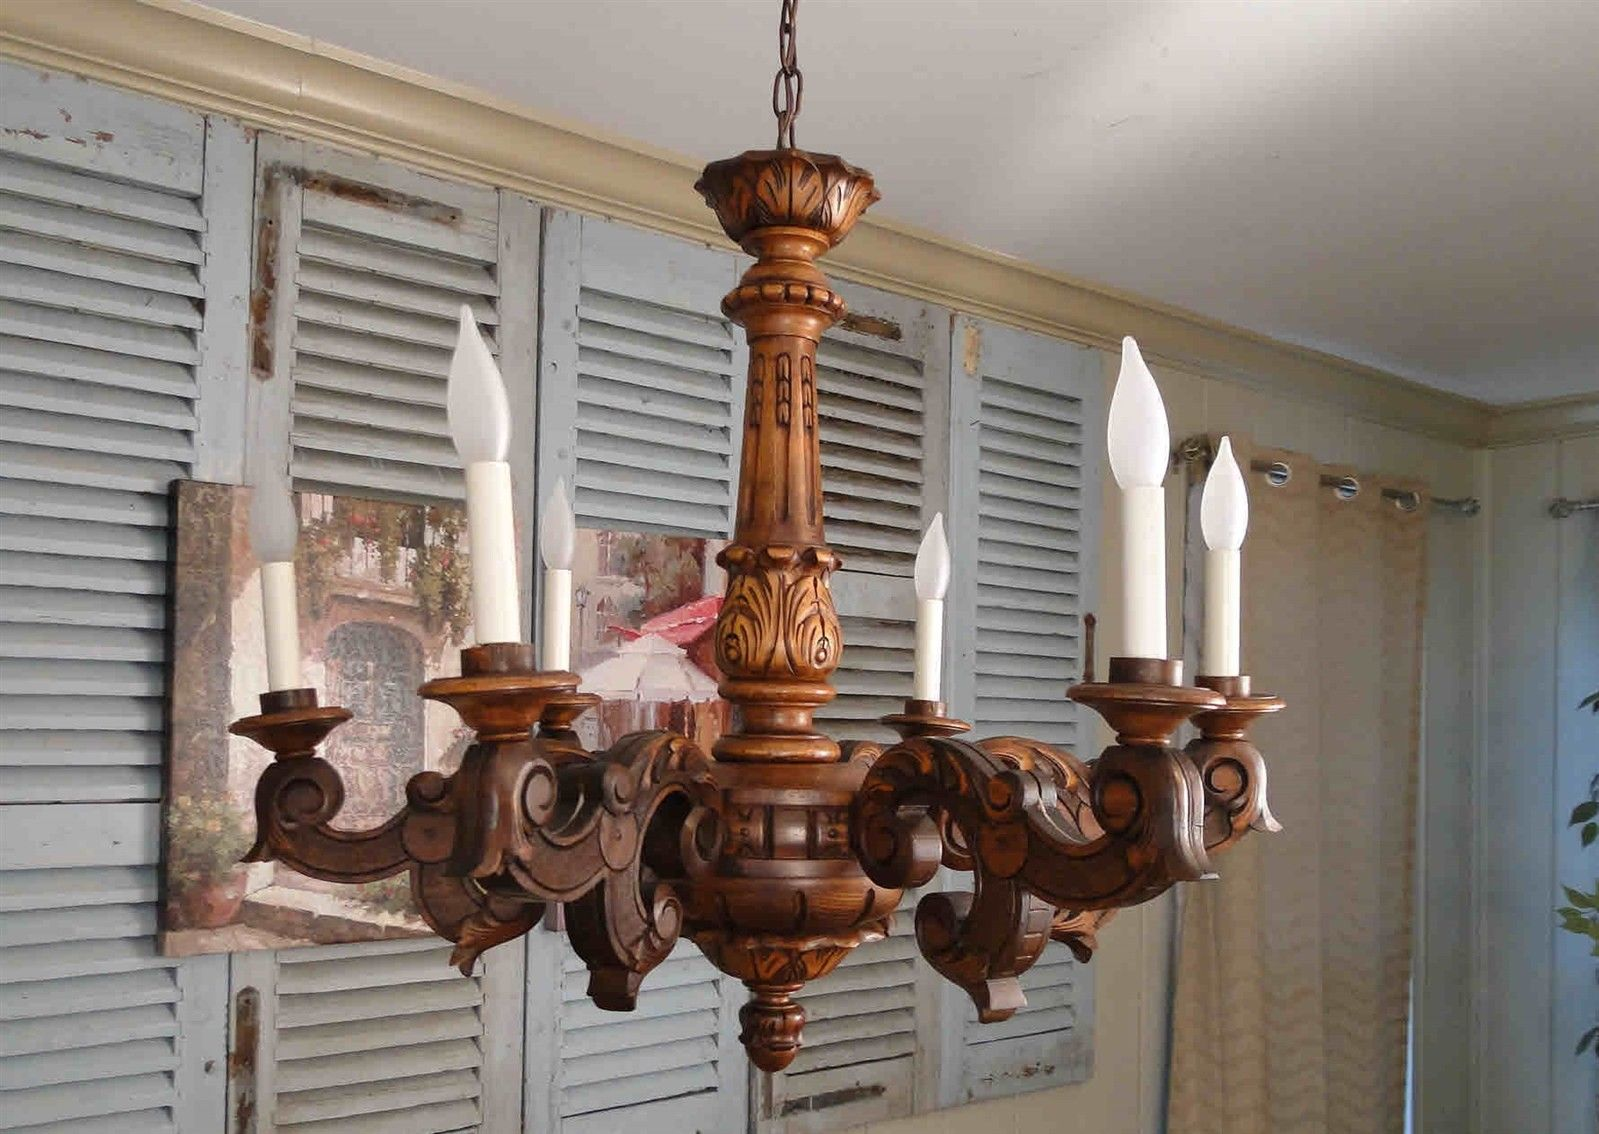 Antique French Wooden Carve Large Chandelier Ceiling Light Rewired for USA